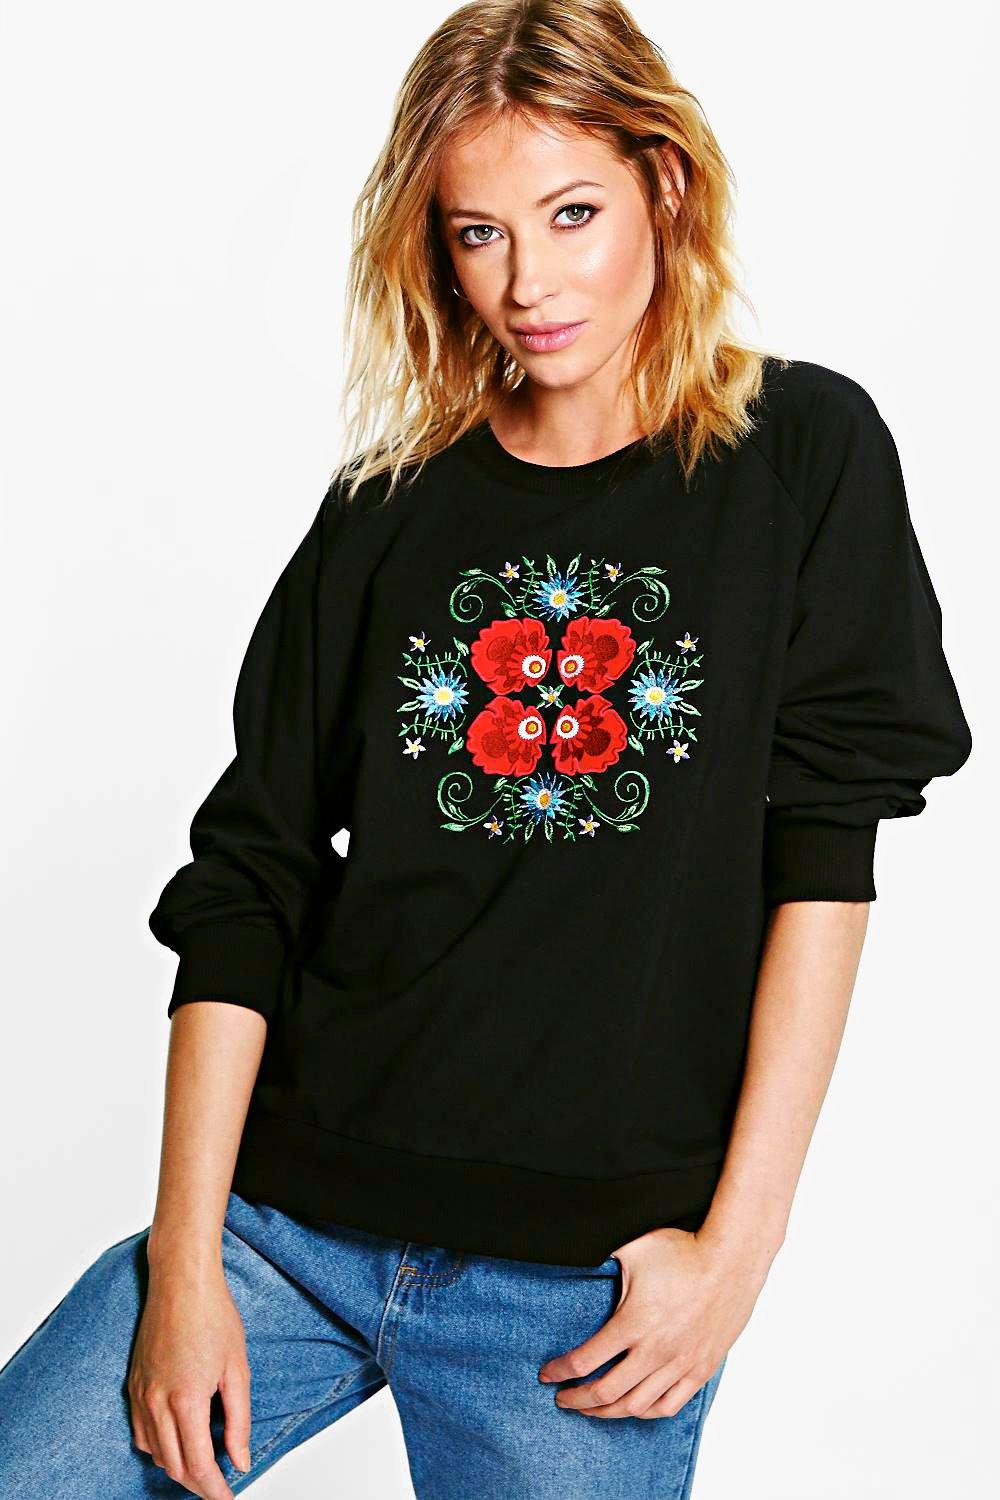 Daisy Applique & Embroidered Sweatshirt